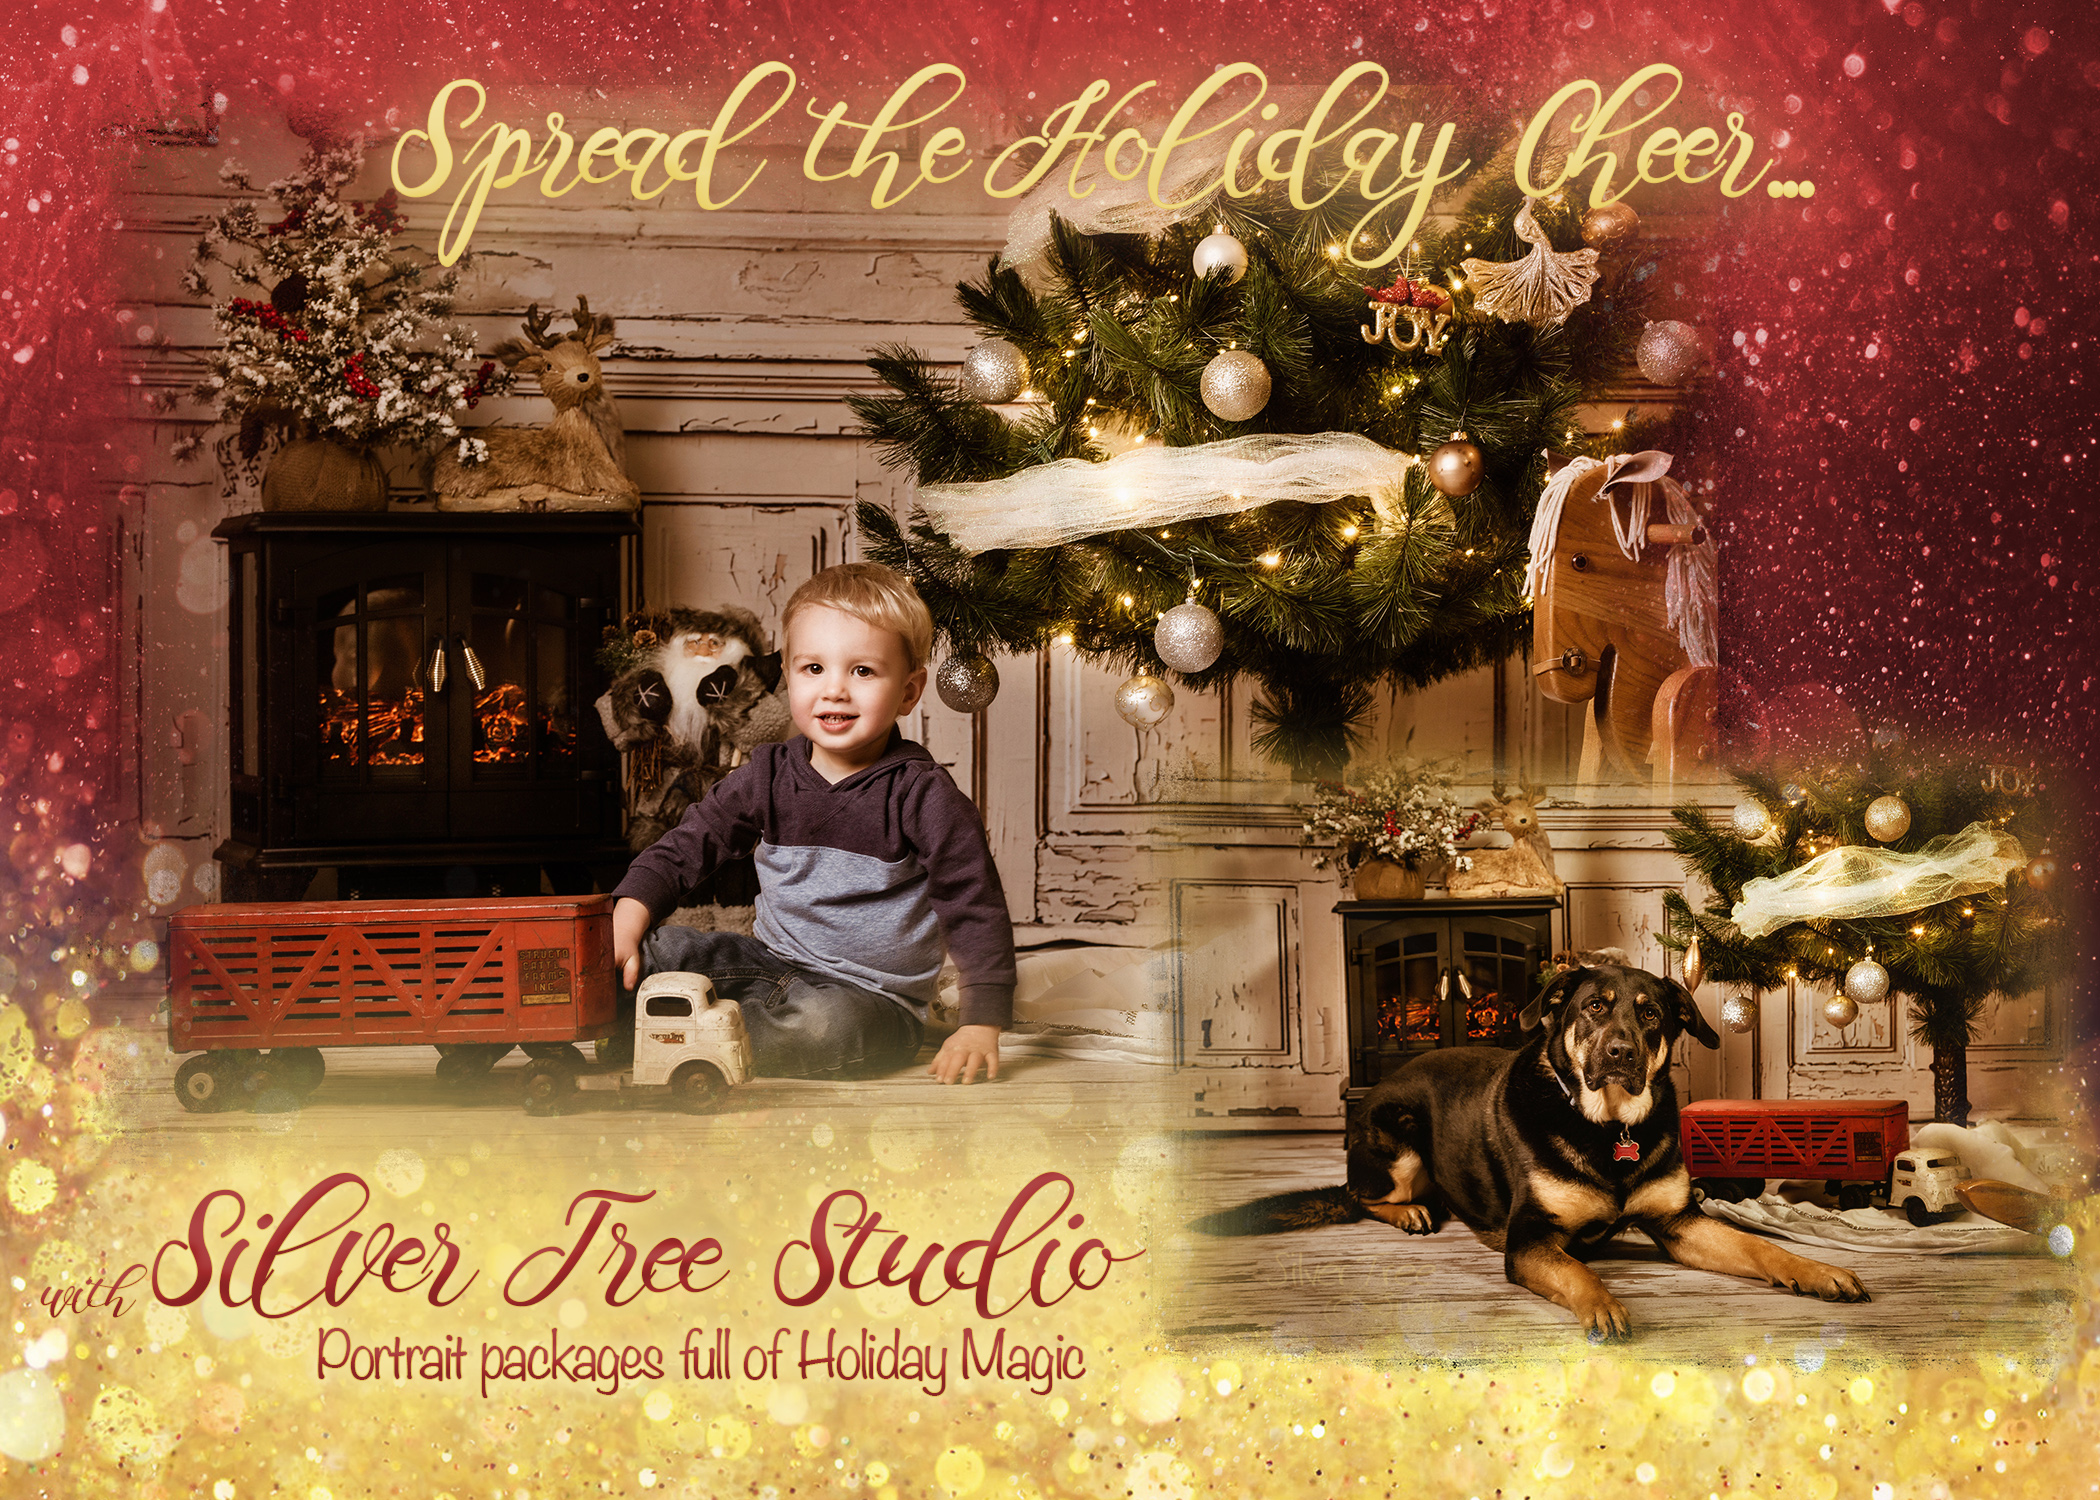 Silver Tree Studio, Photography, Christmas, Holiday, Specials, Limited Edition, Pictures, Children, Kids, Pets